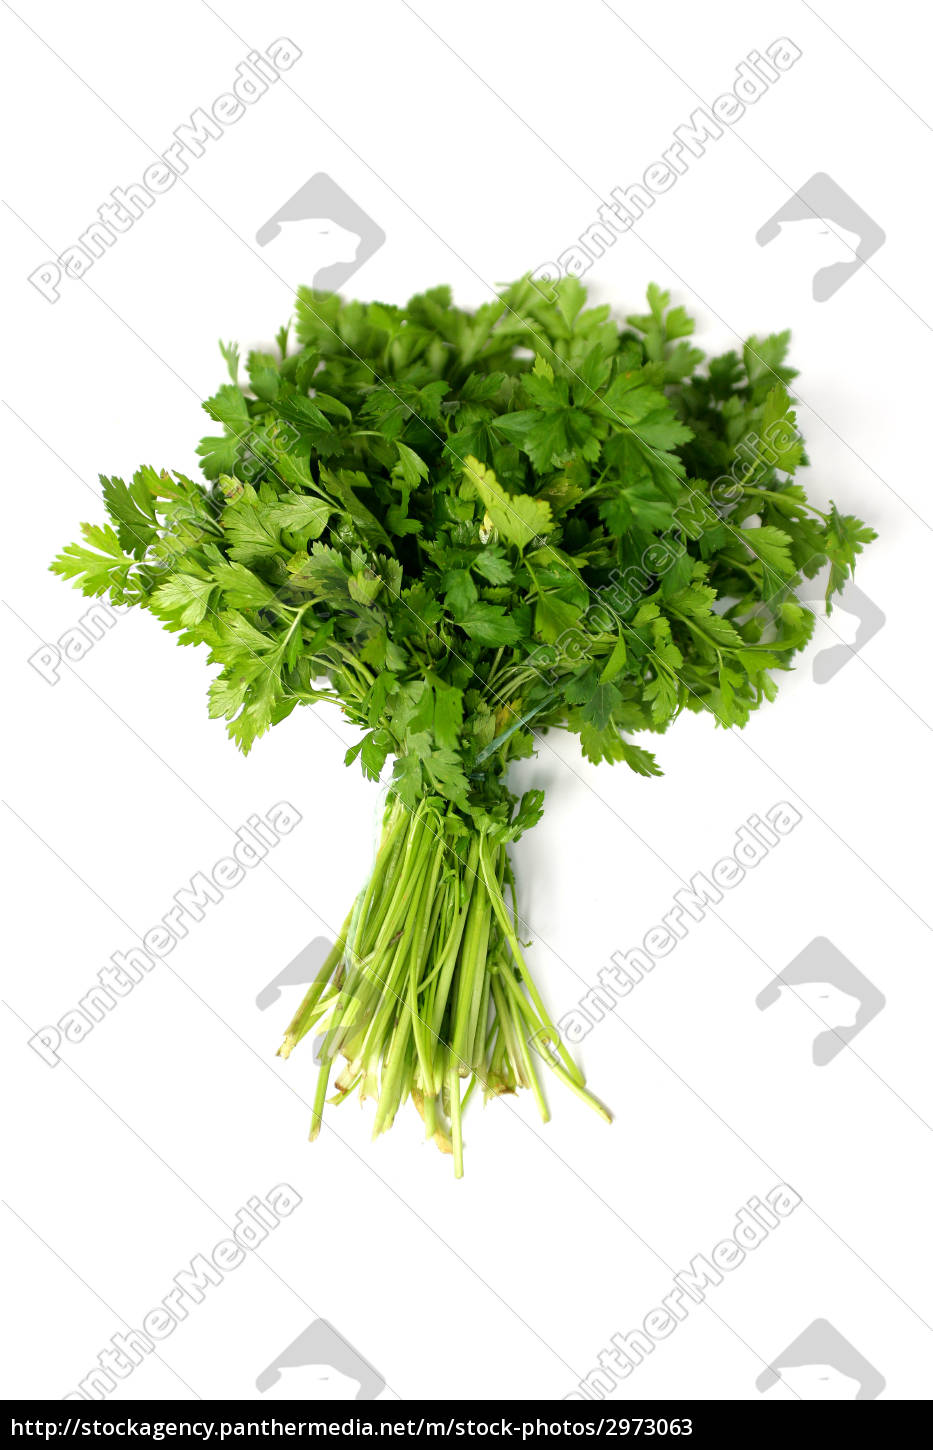 aromatic, vegetable, parsley, plant, aromatic plant, bunch of parsley - 2973063